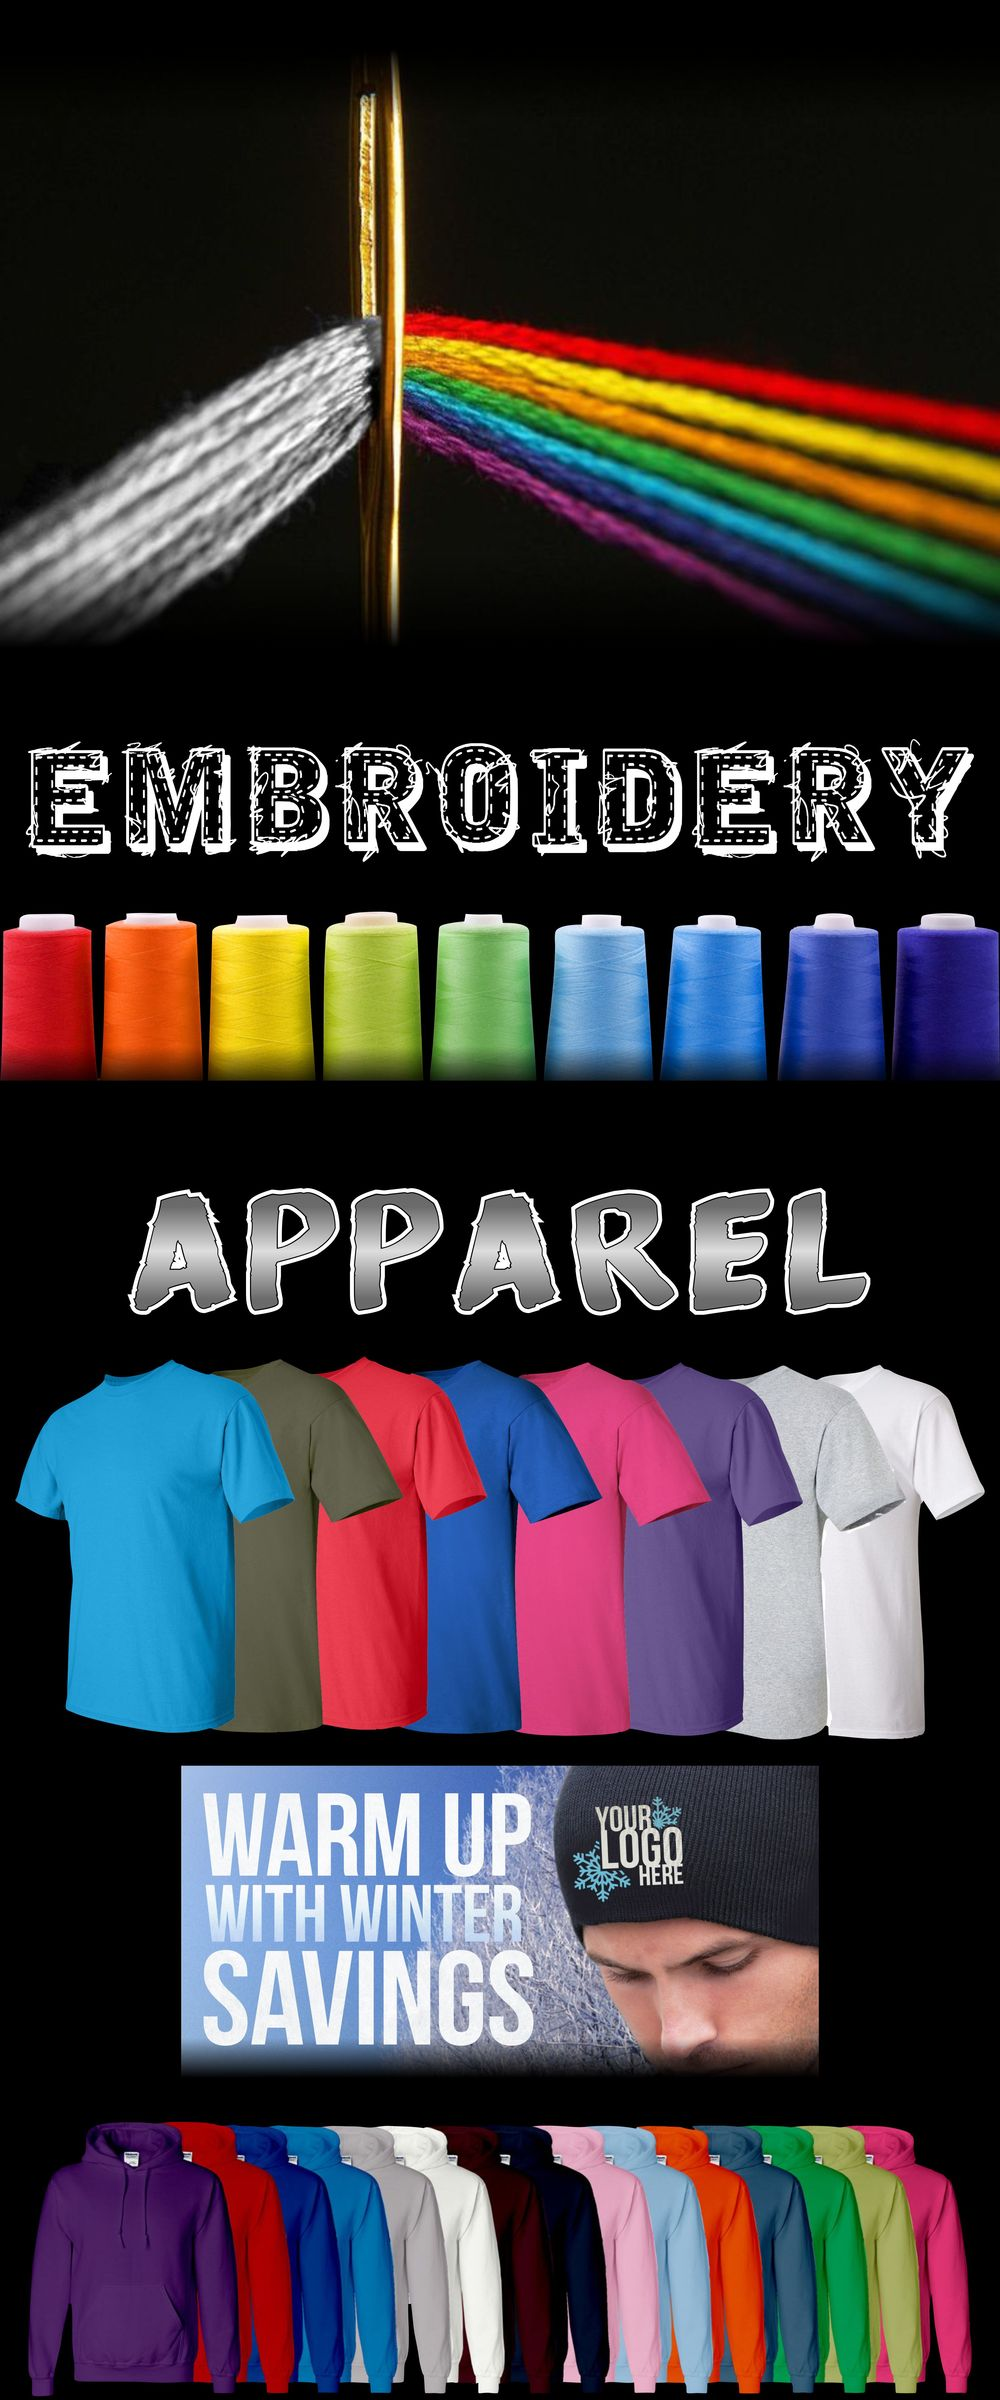 Embroidery & Apparel.jpg